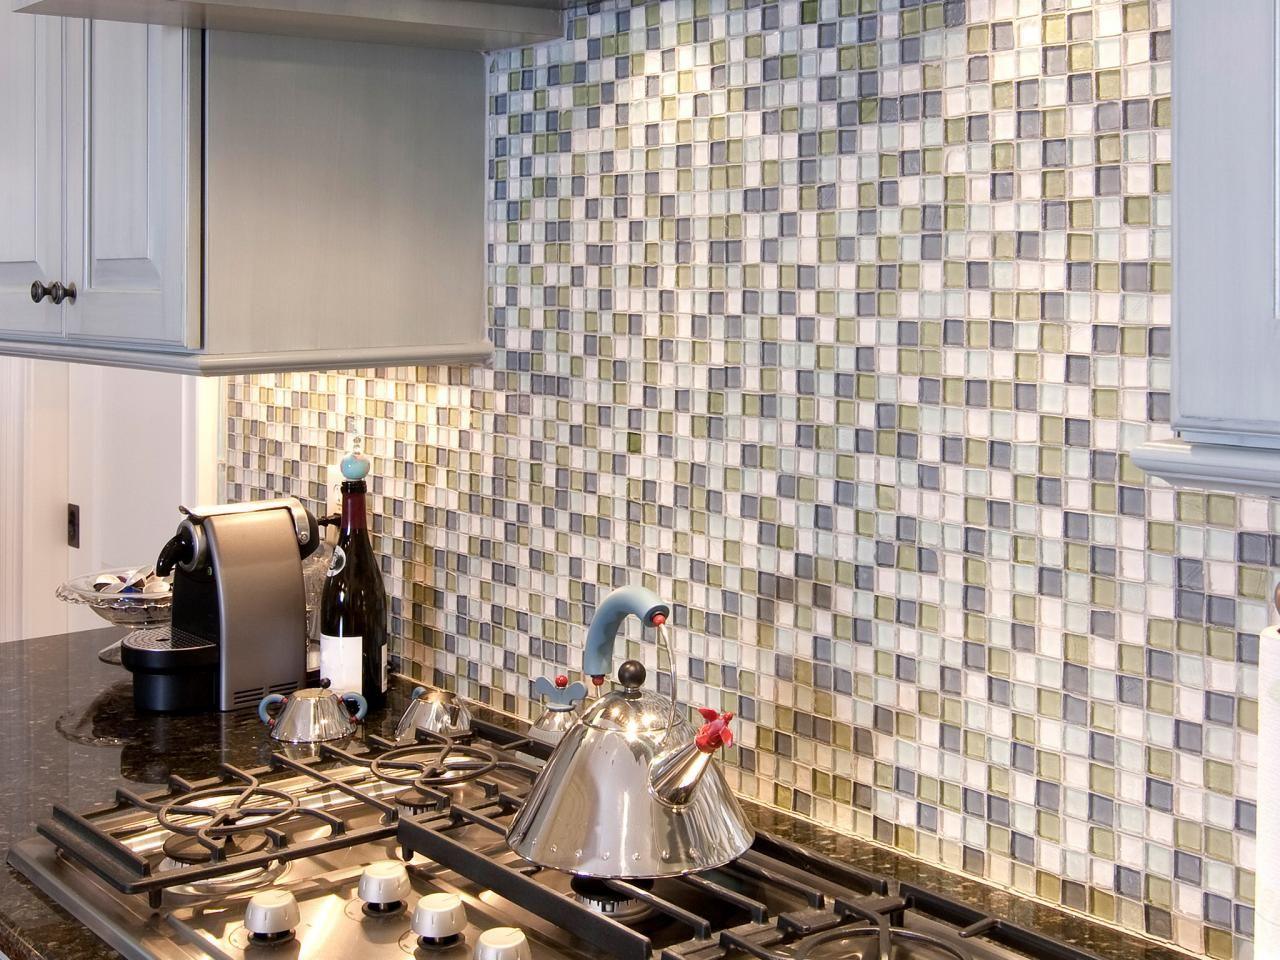 Explore Glass Tile Backsplash Ideas, And Prepare To Install An Attractive  And Efficient Backsplash In